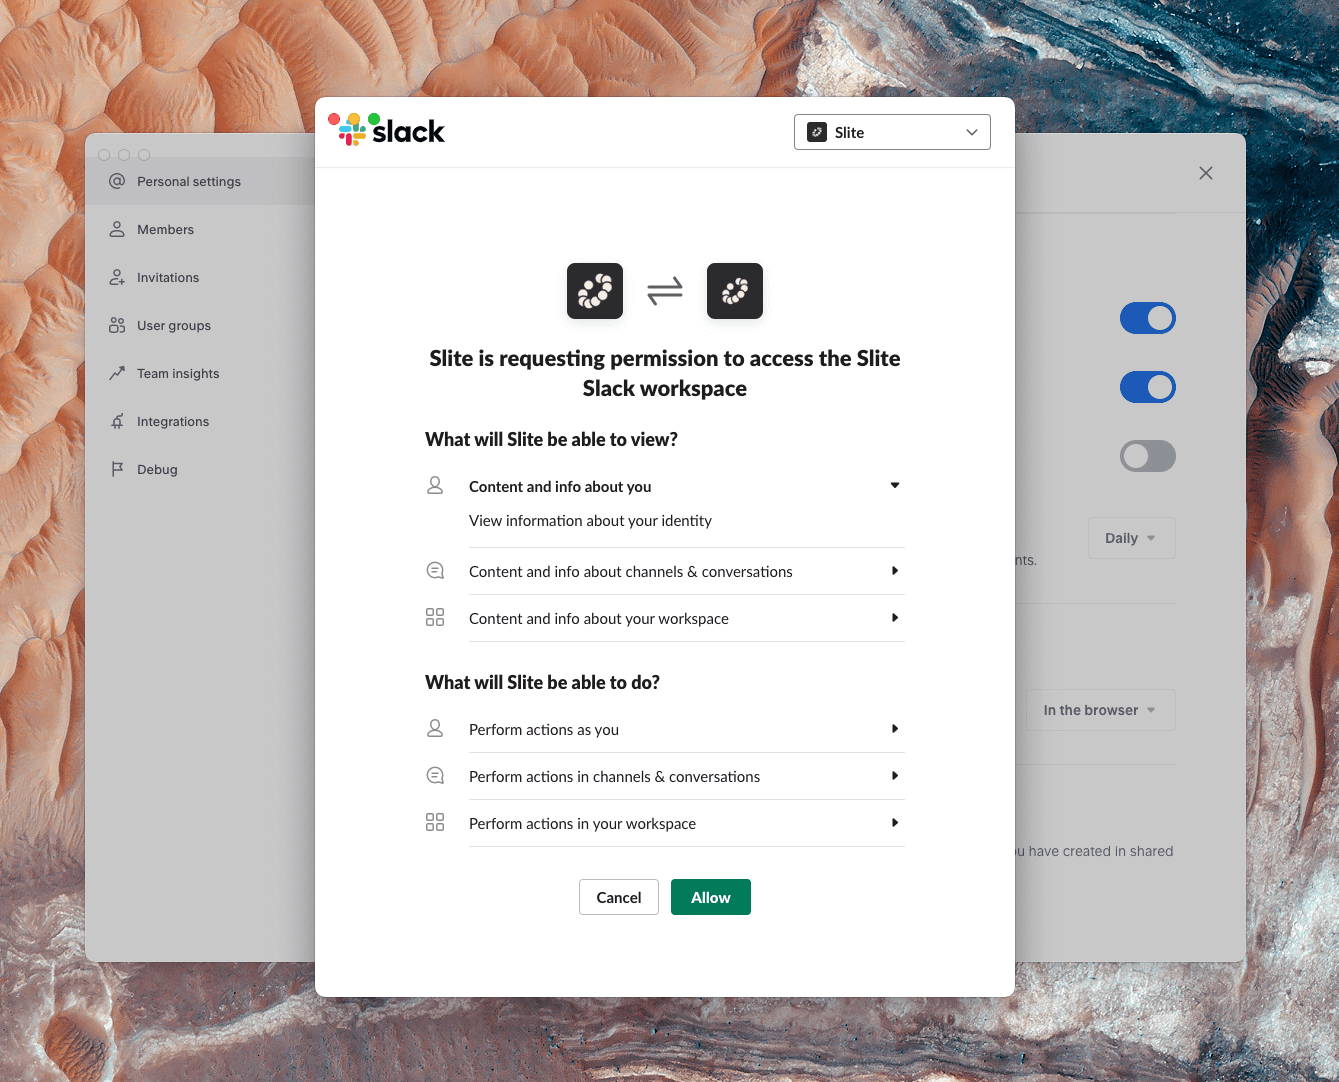 Allow permissions between you Slack and Slite teams.